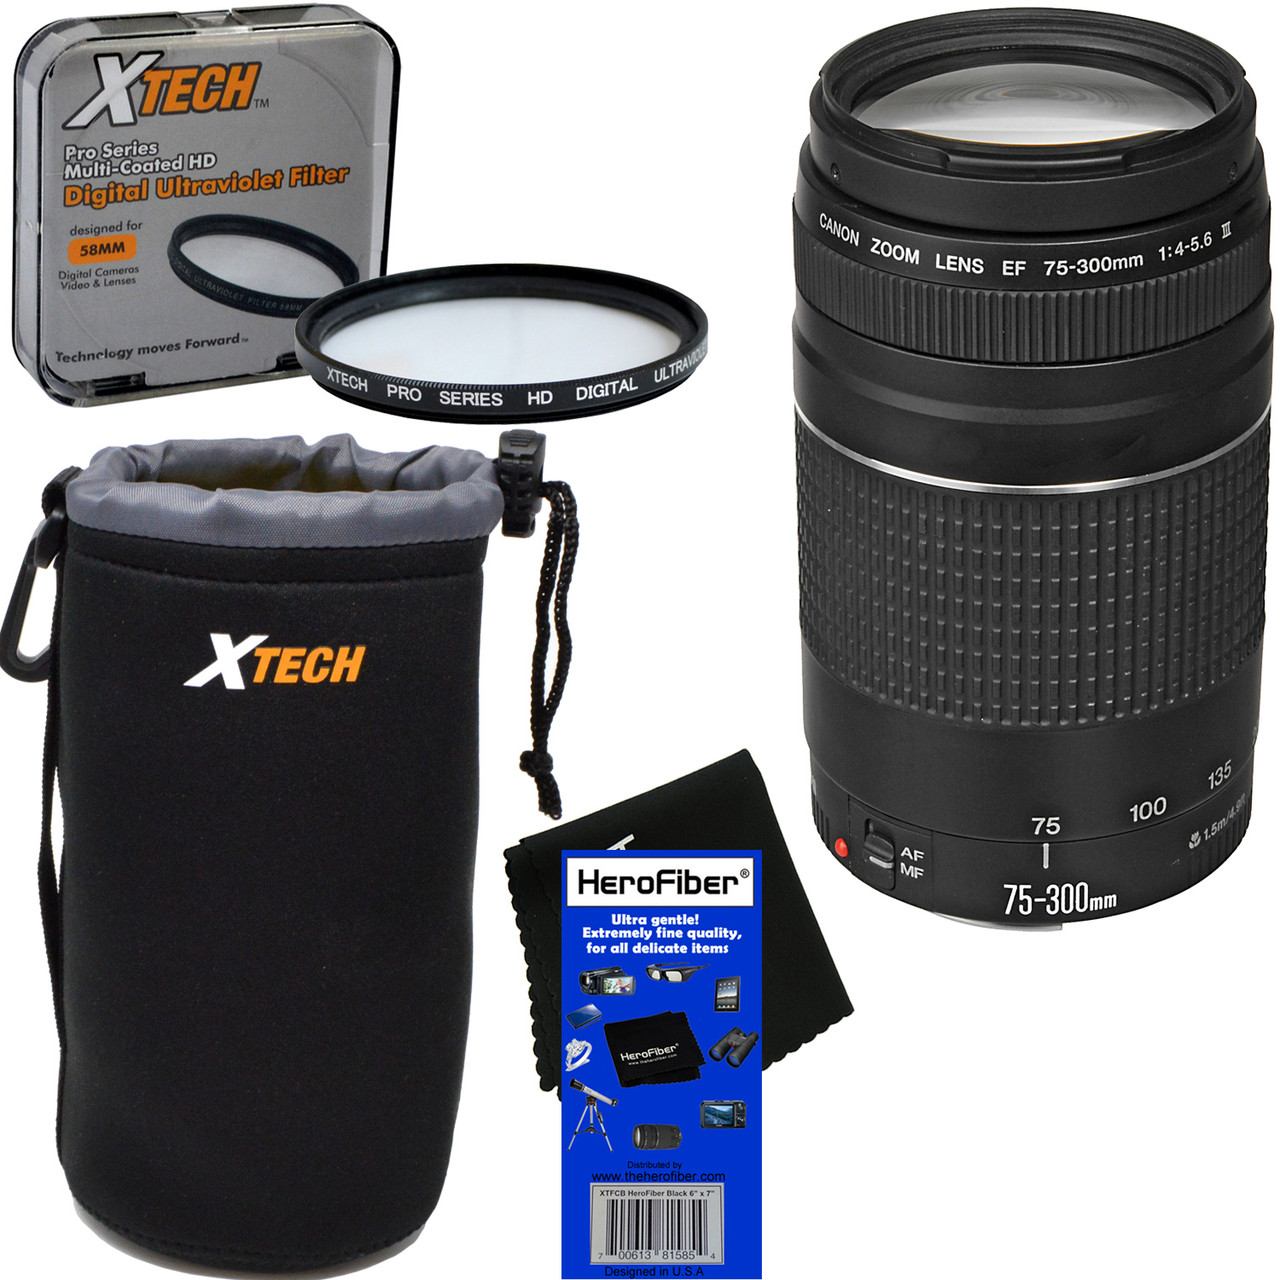 Canon EF 75-300mm f/4-5 6 III Telephoto Zoom Lens for EOS 7D, 60D, 70D, EOS  Rebel SL1, SL2, SL3, T1i, T2i, T3, T3i, T4i, T5, T5i, T6, T6i, T6s, T7,